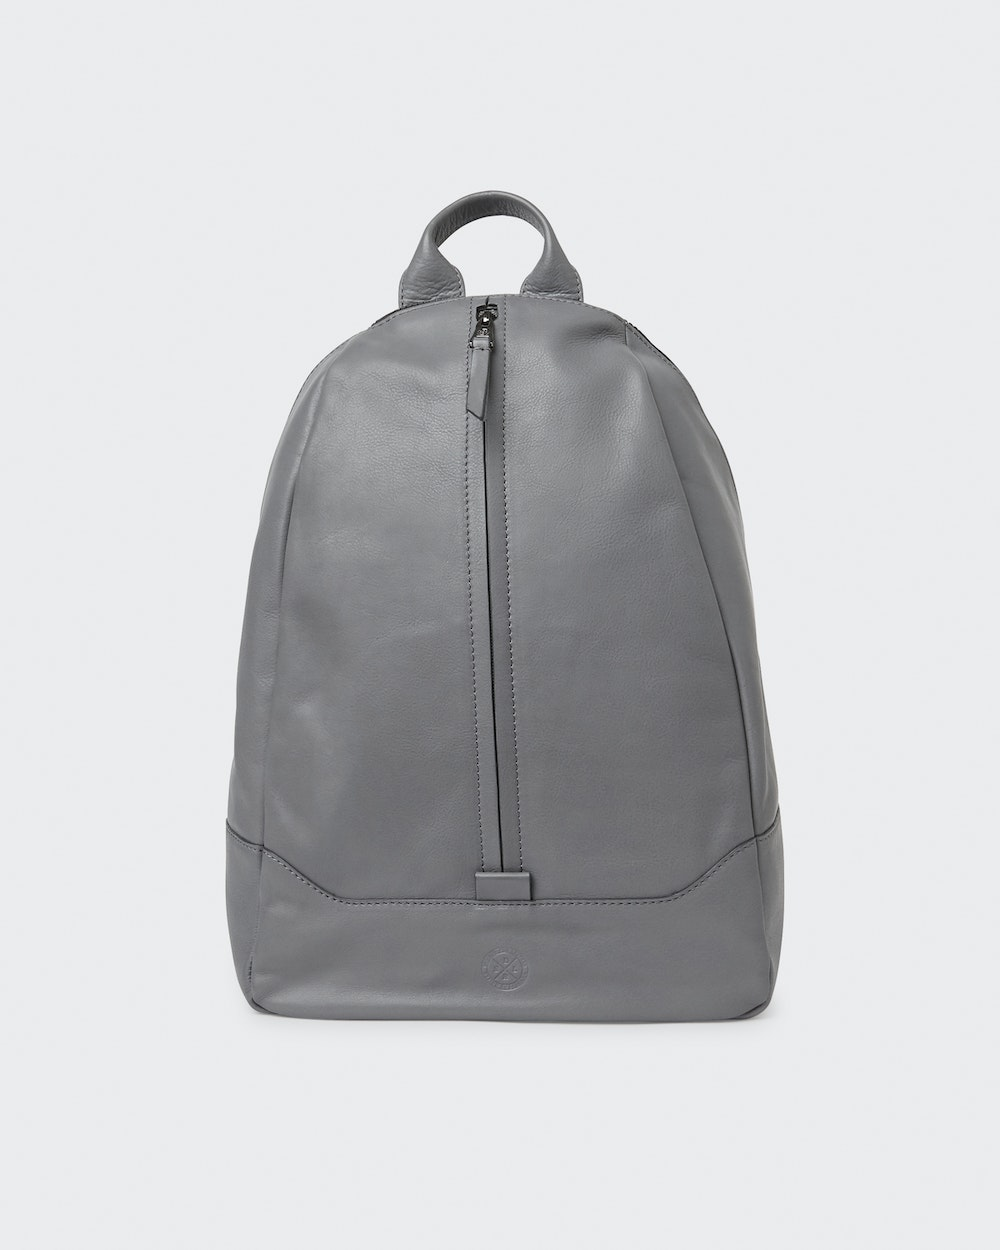 Joe backpack Grey Saddler